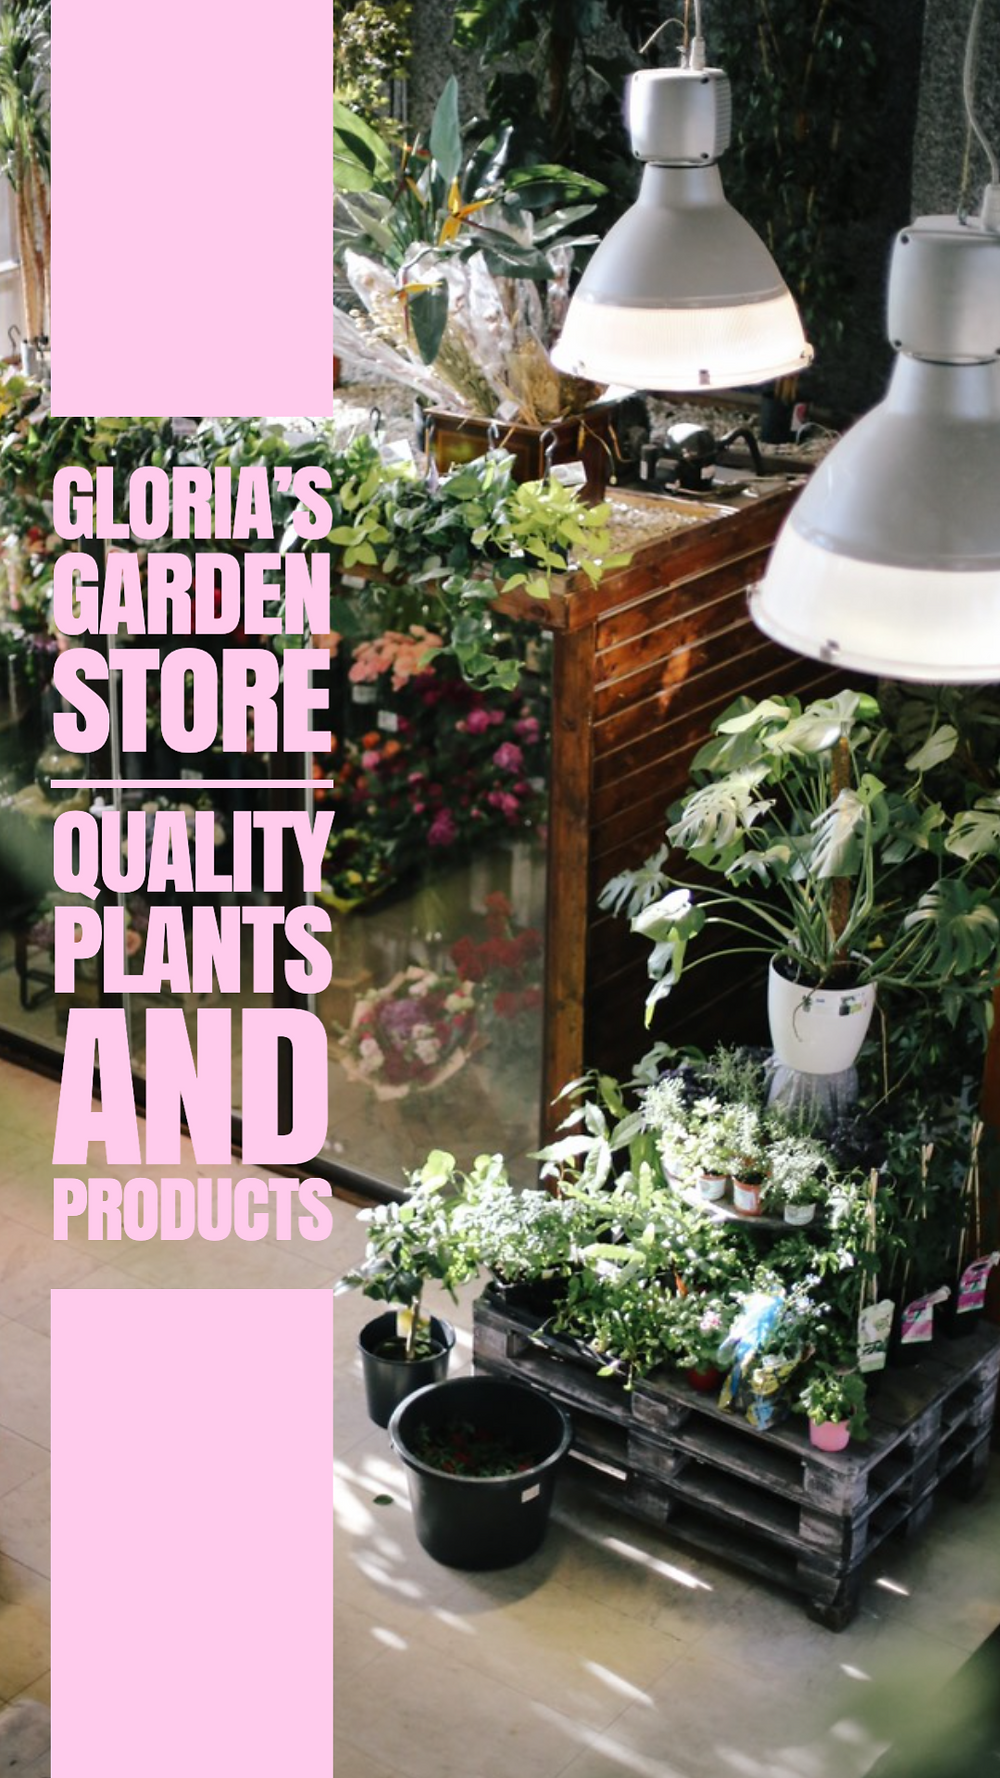 National Plant a Flower Day social media story template, garden store story with greenery plants and pink text